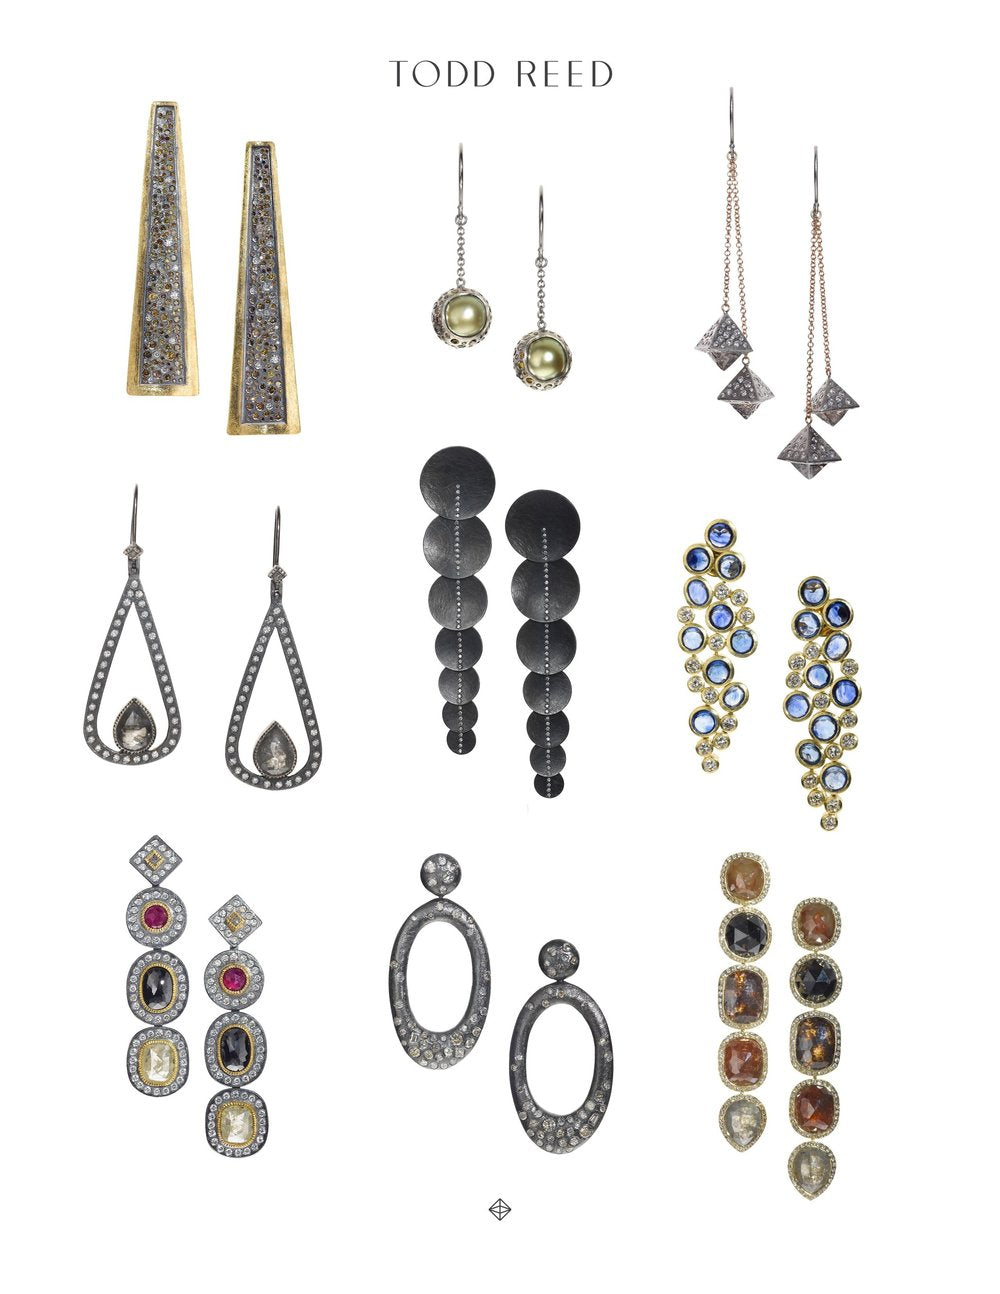 Todd Reed earring selection